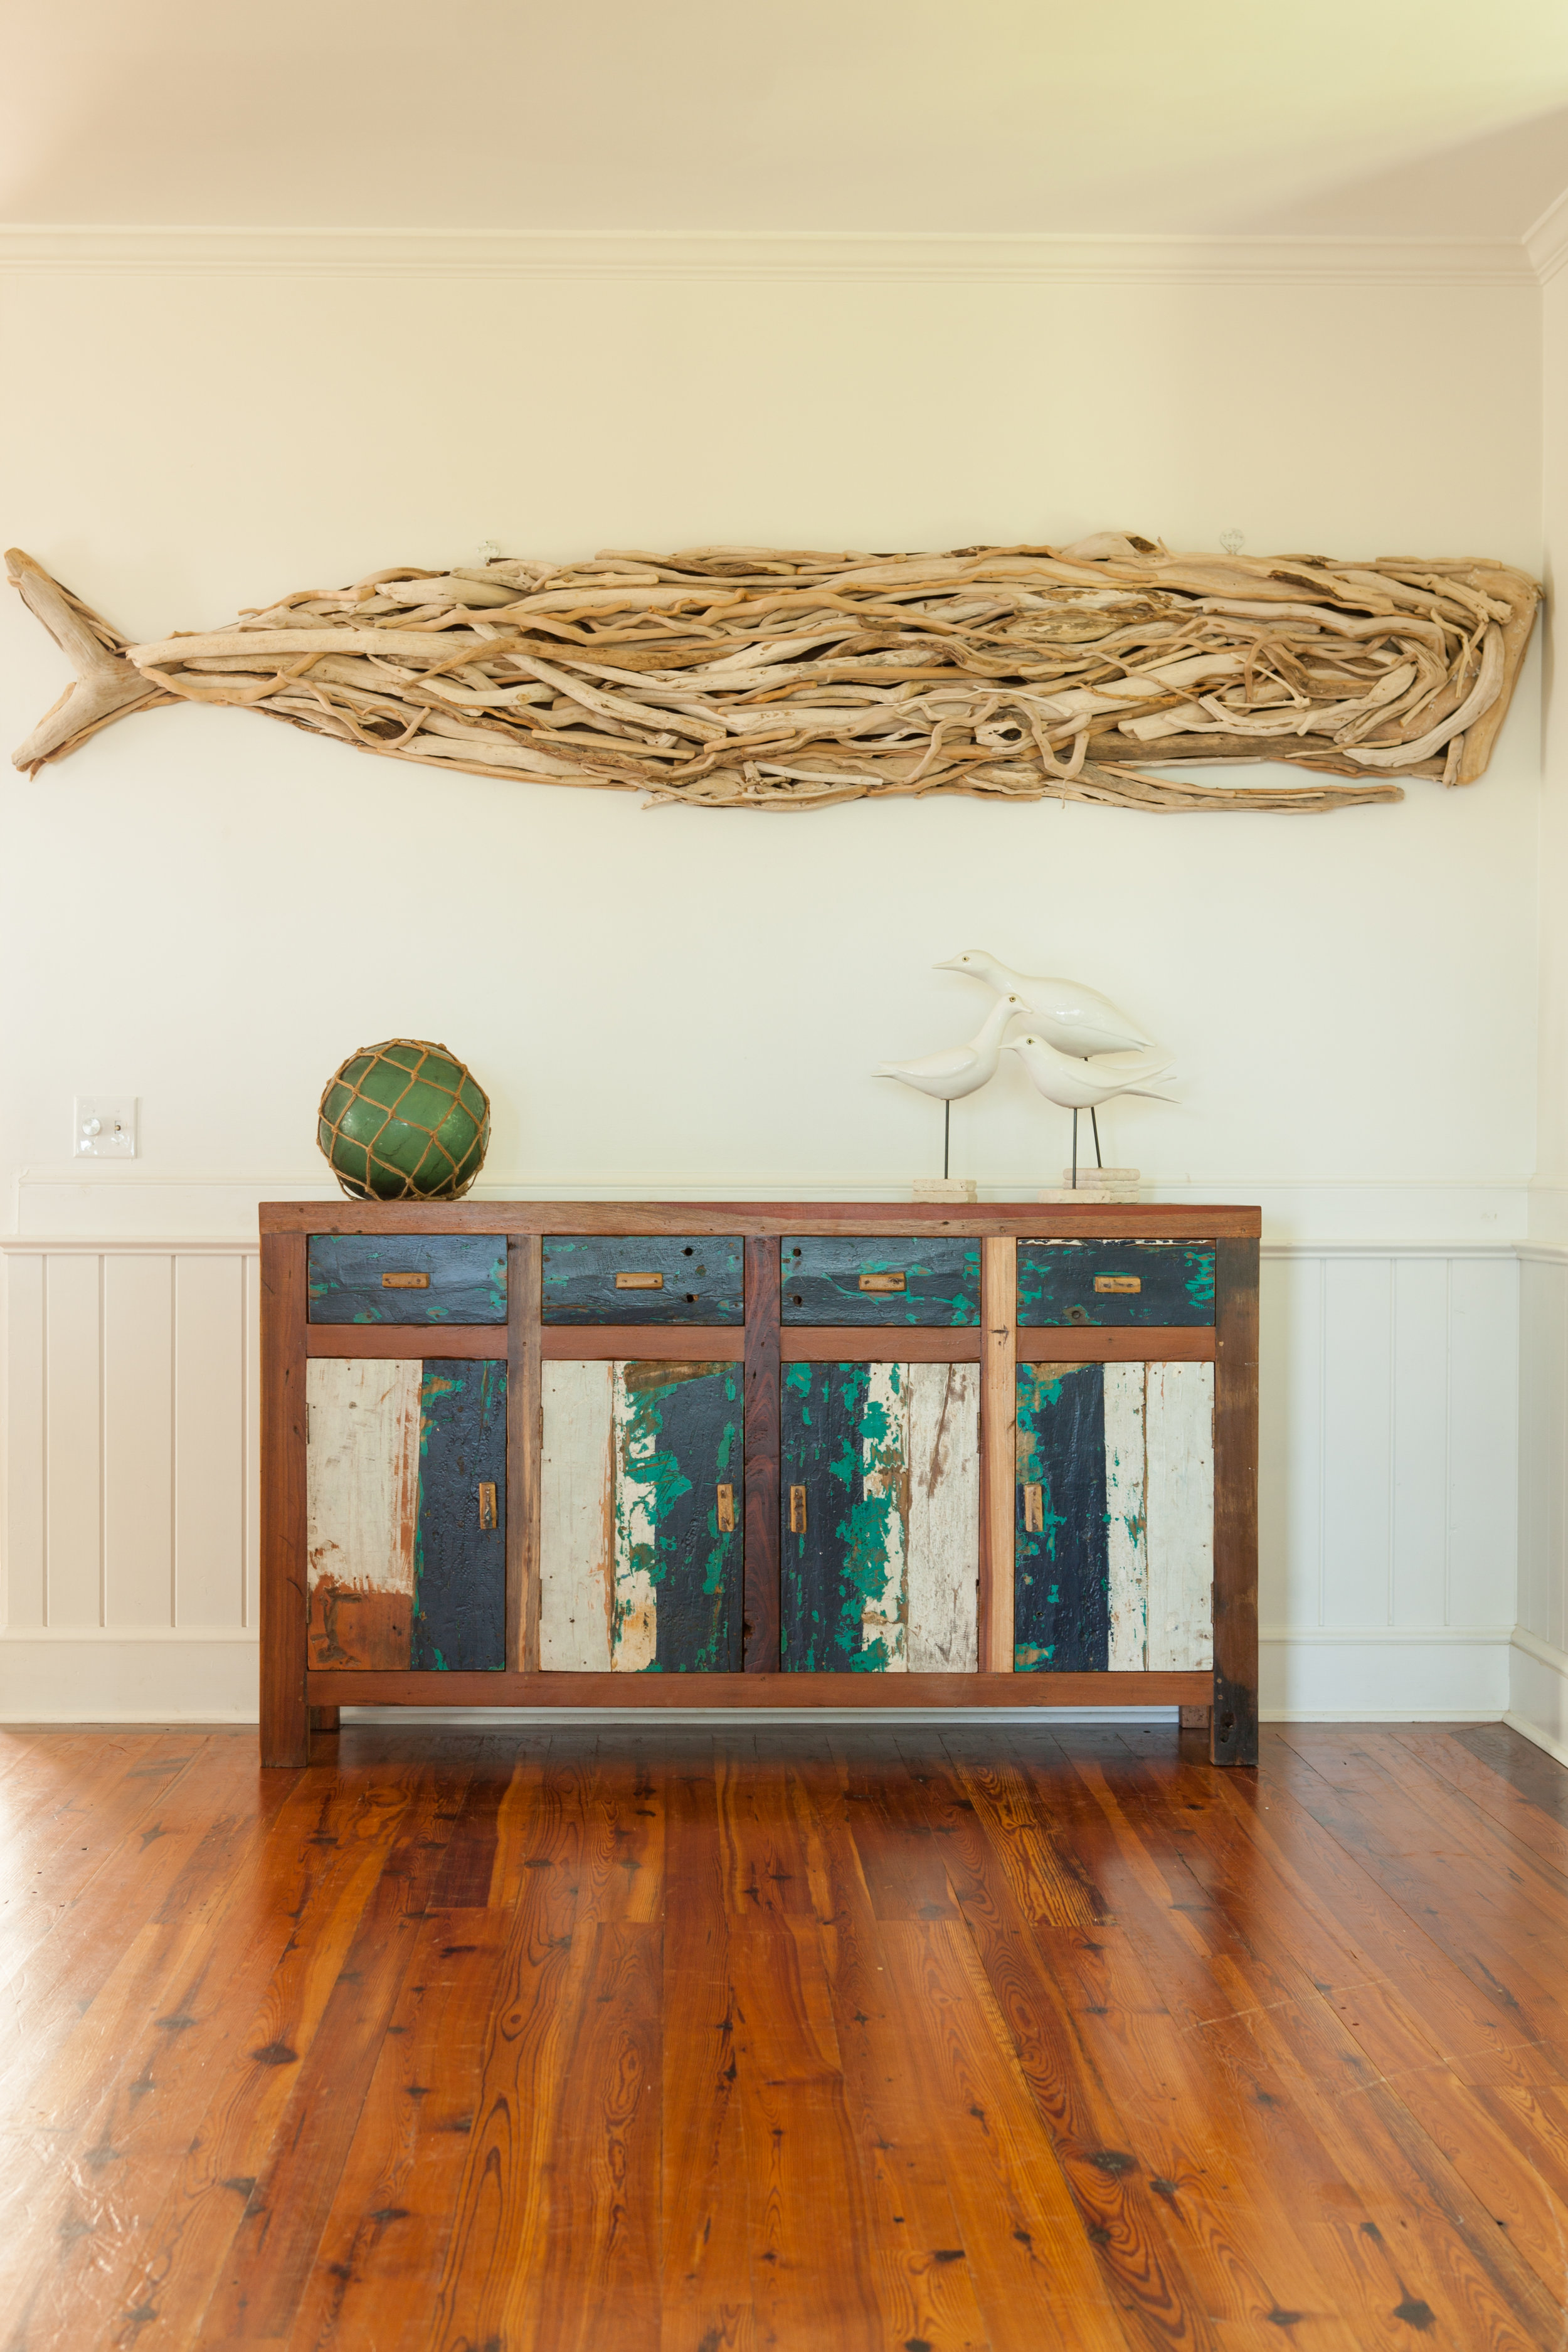 The YuYu 4 drawer storage and serving Buffet is beautiful and practical. Made of teakwood reclaimed from fishing boats from Bali, each piece is handcrafted and unique. Perfect for use indoors or outdoors on covered patio.